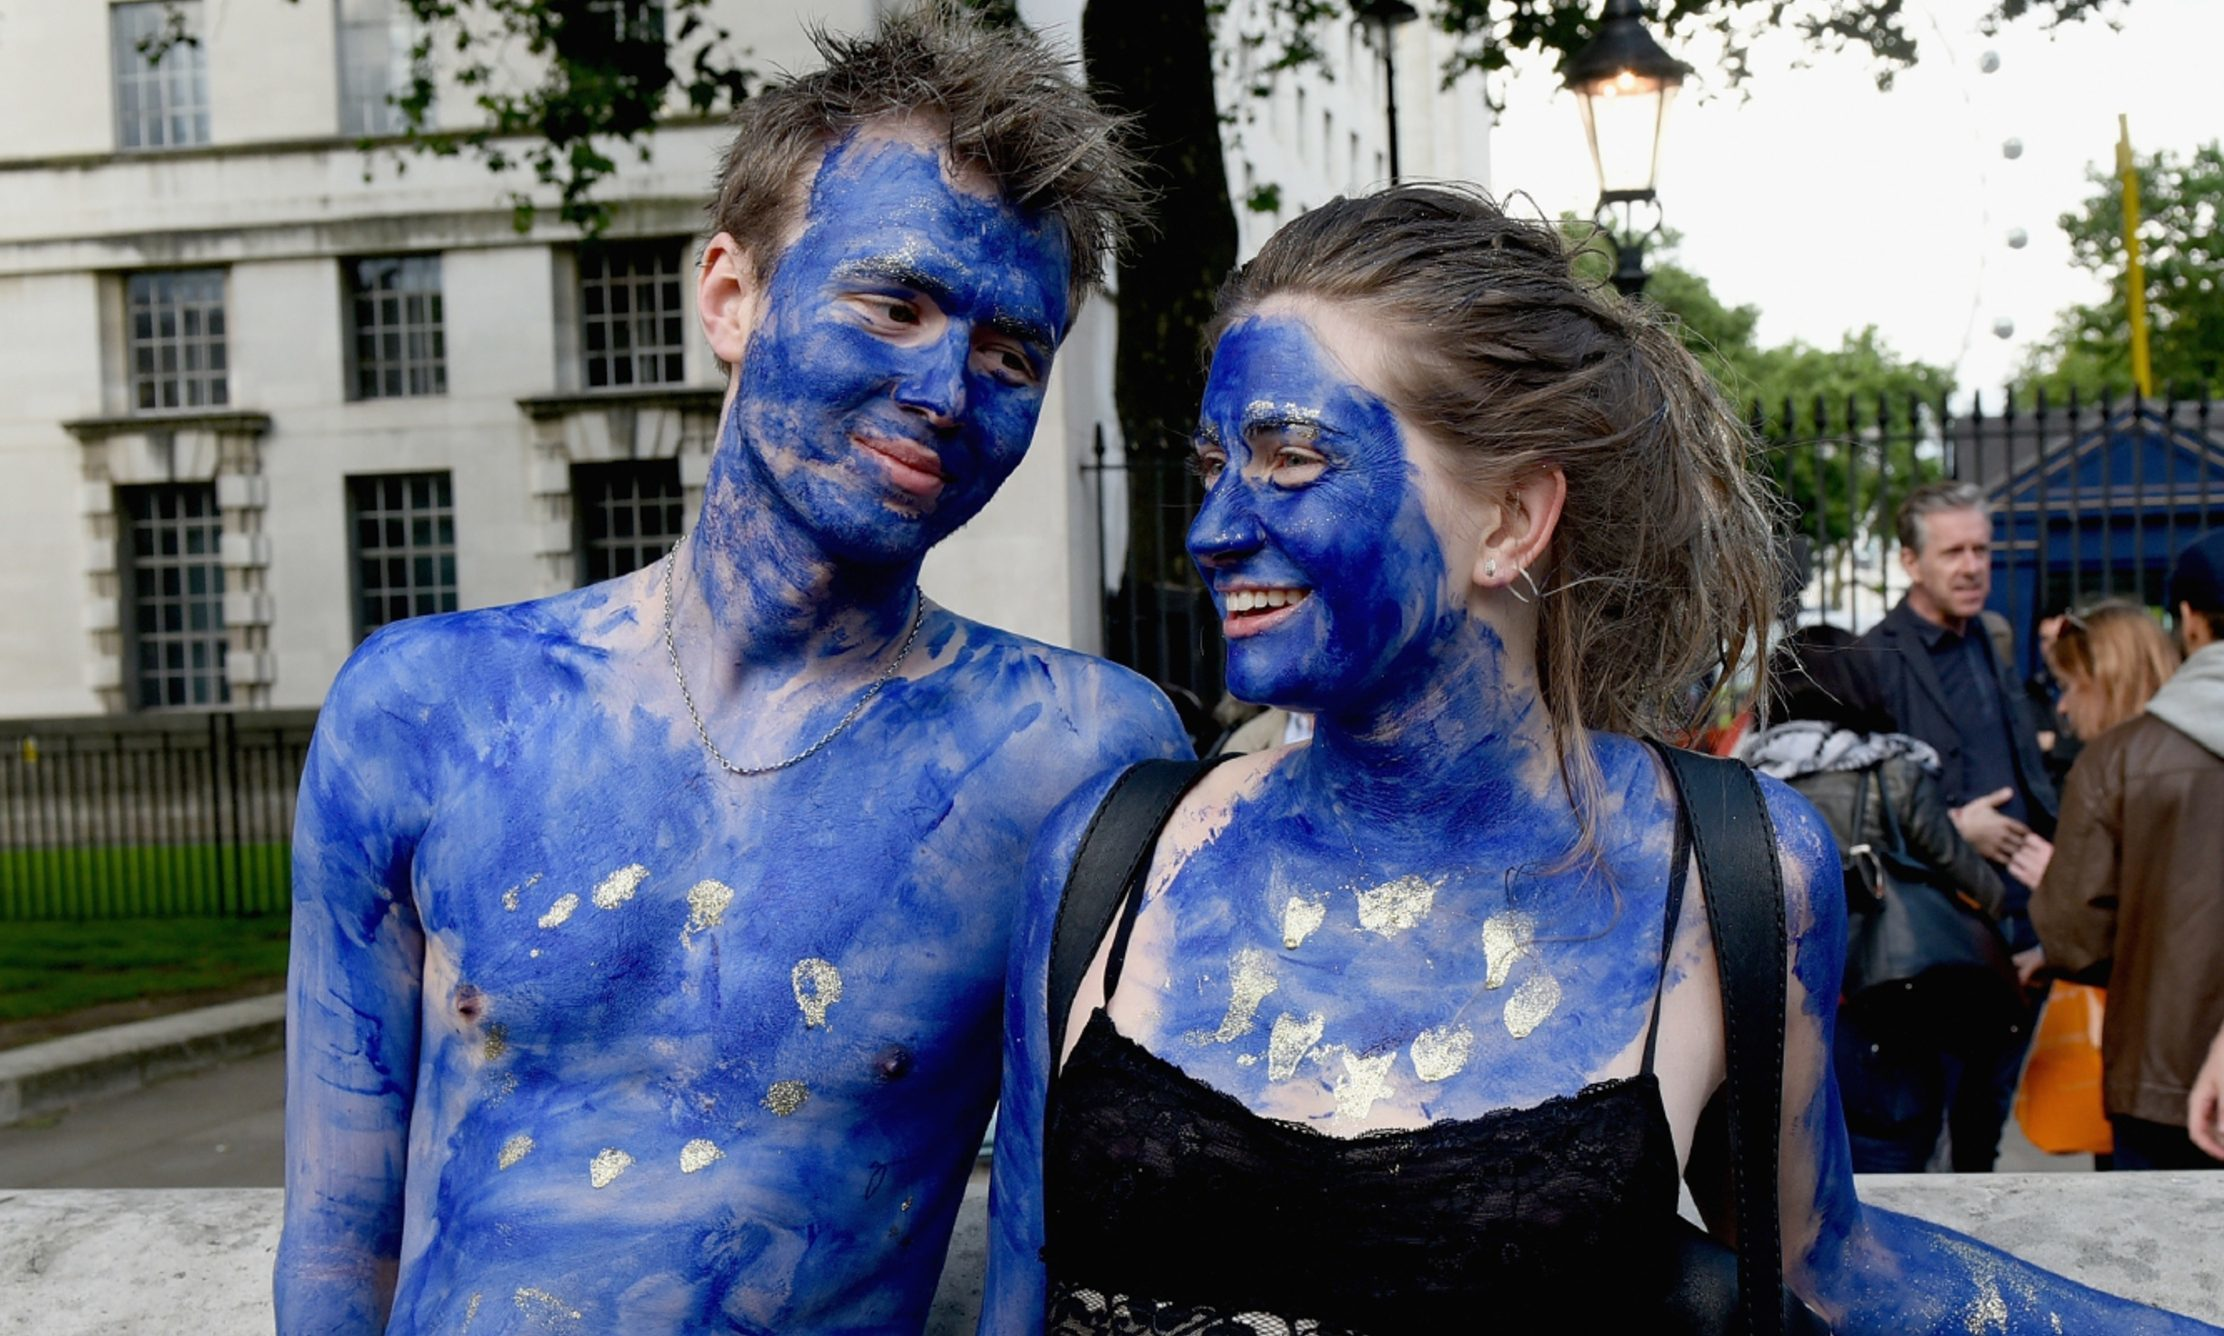 A young couple painted as EU flags protest outside Downing Street against the United Kingdom's decision to leave the EU.